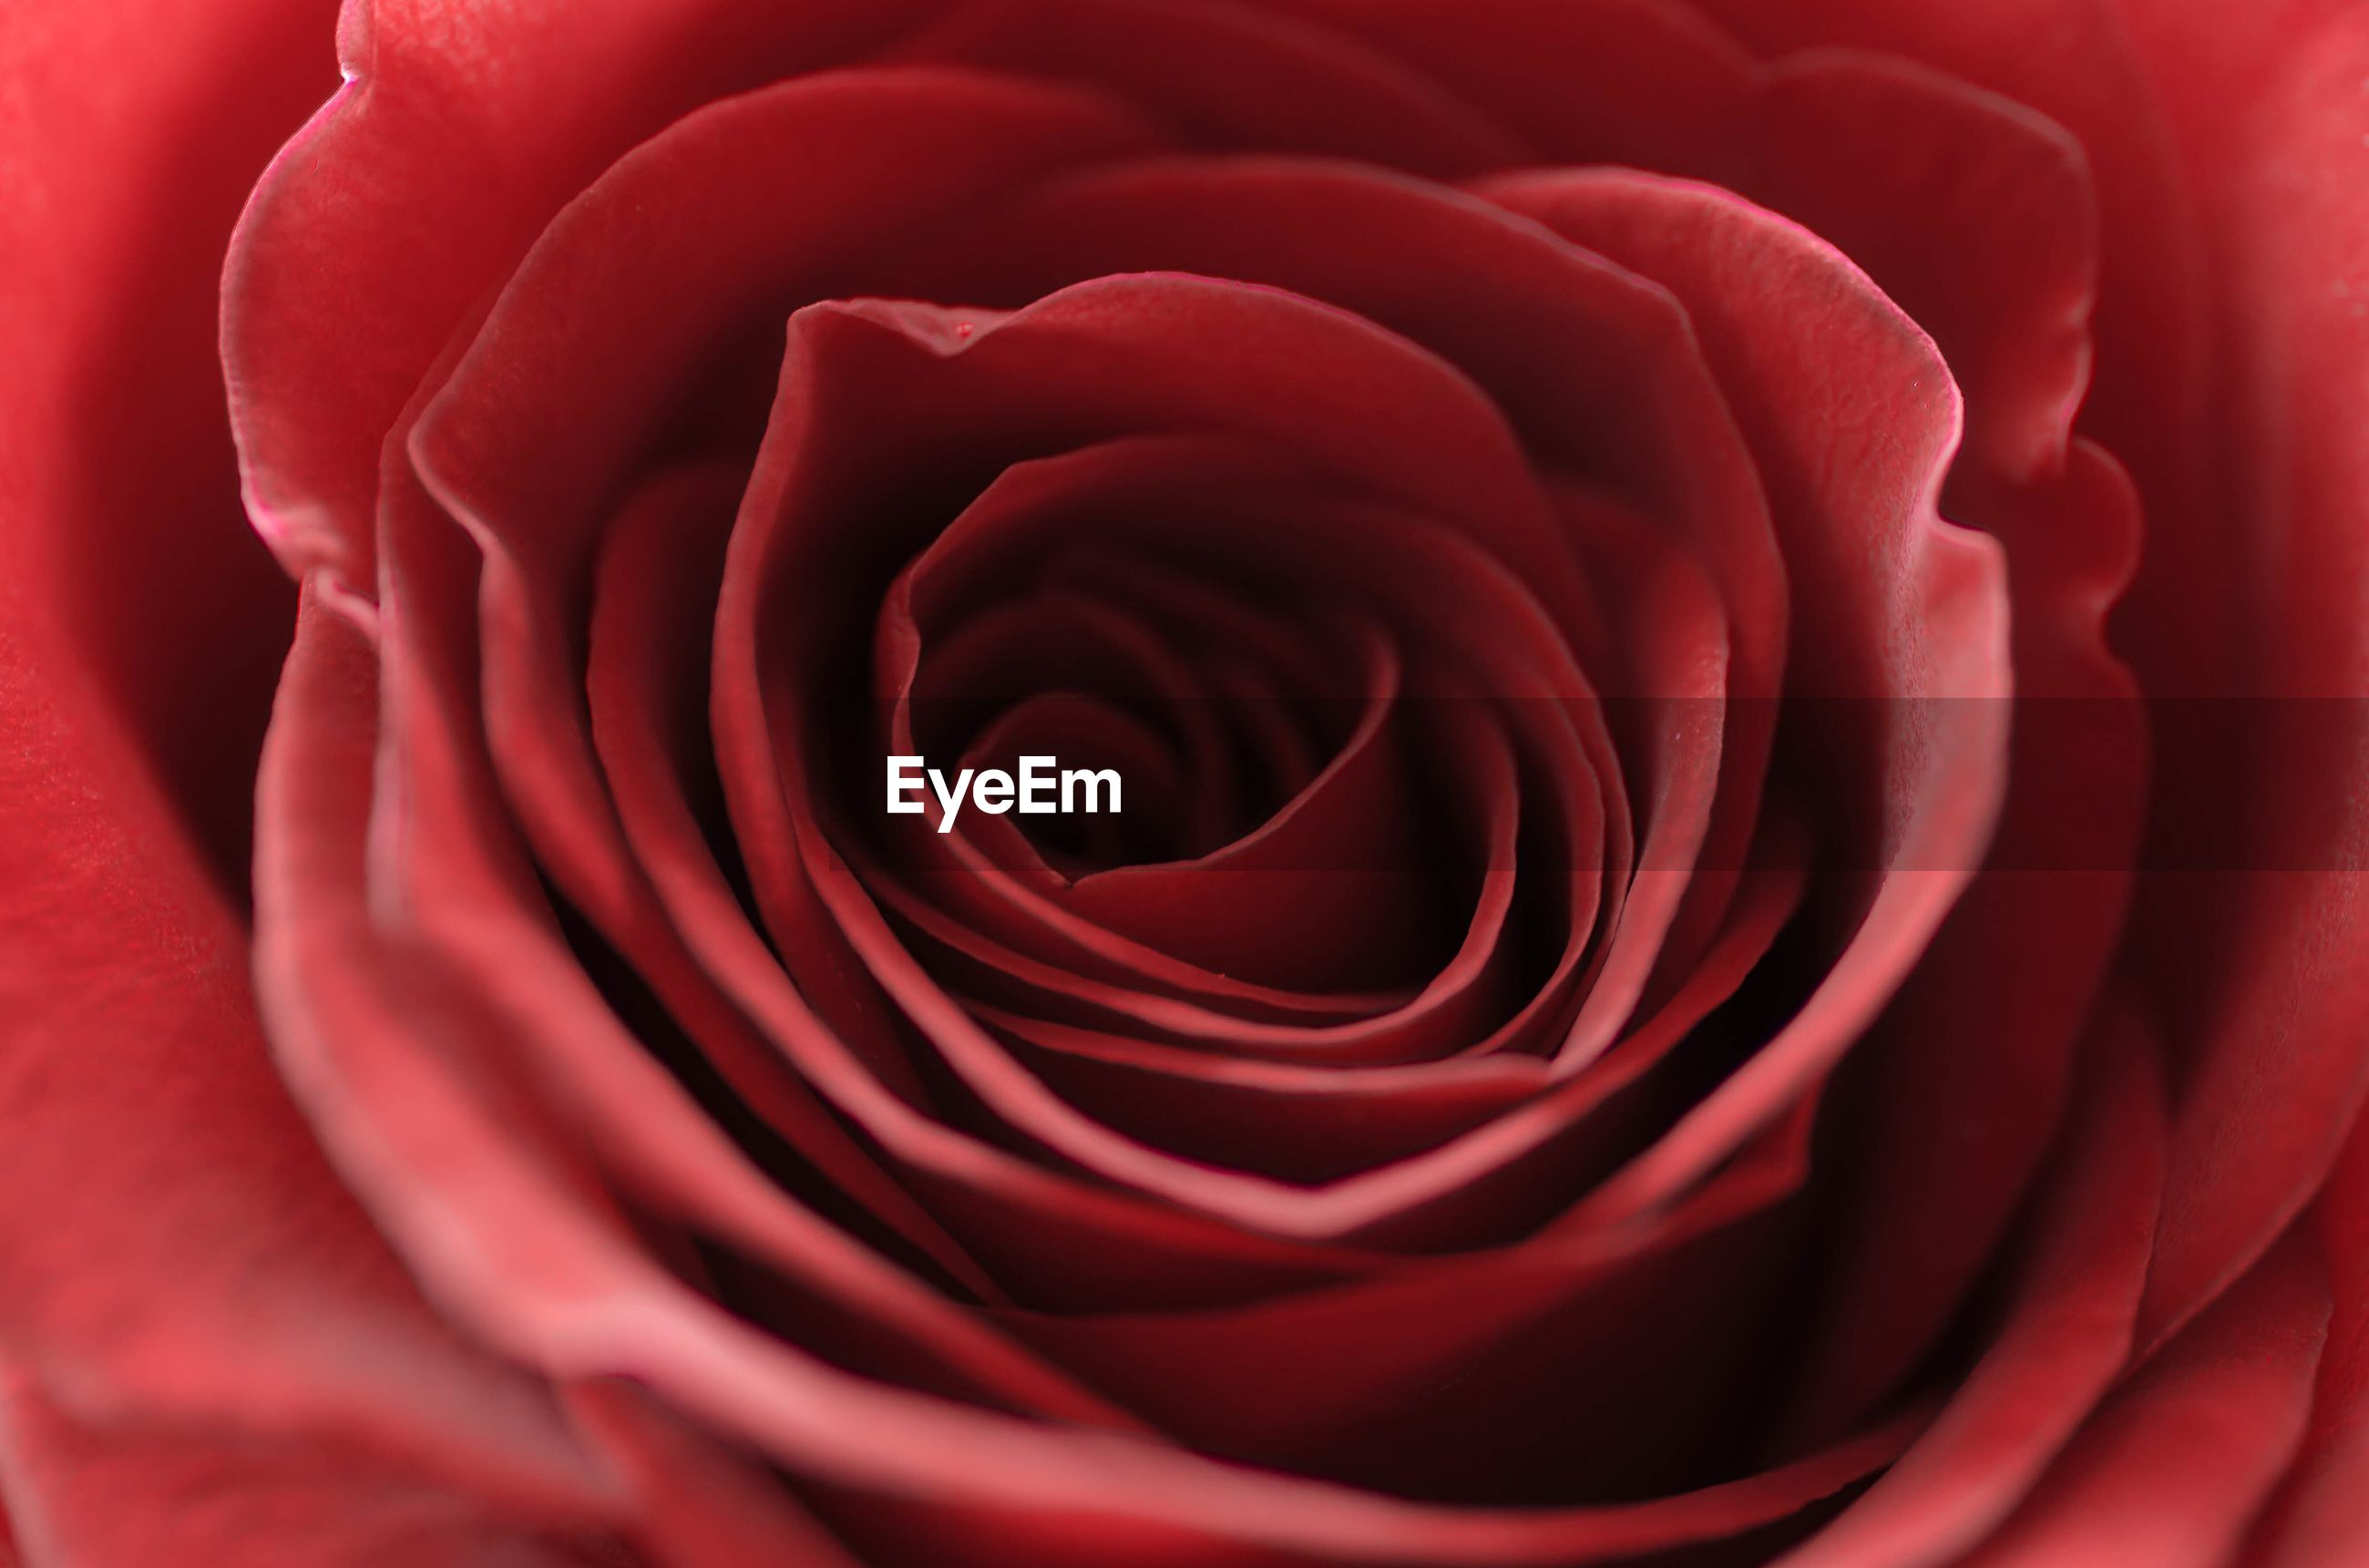 EXTREME CLOSE-UP OF RED ROSE